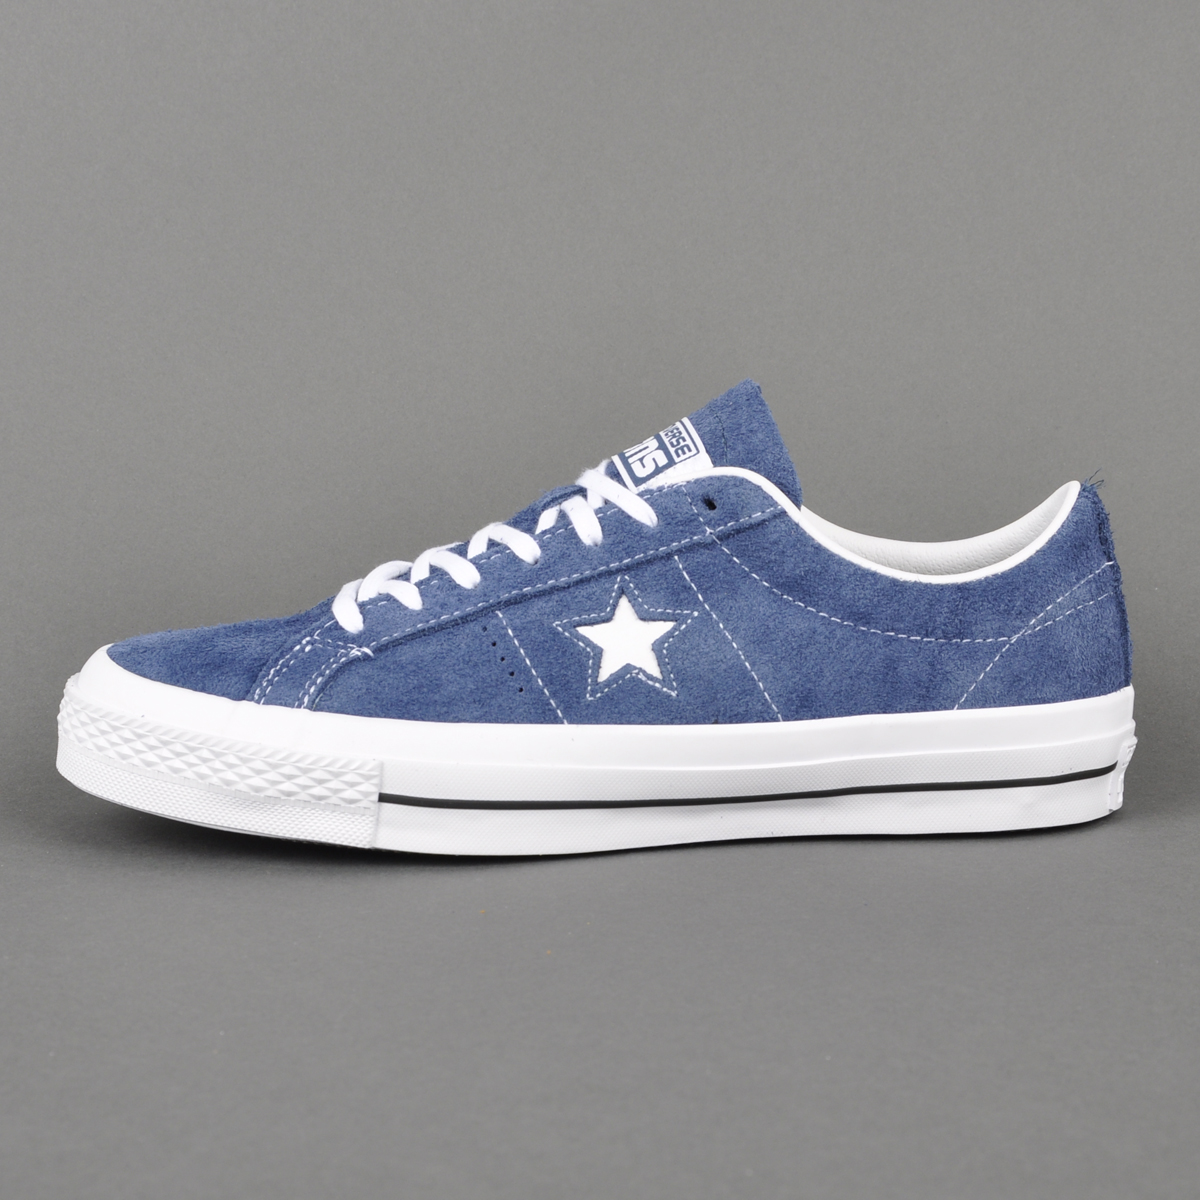 0b6c850c87ee sweden converse one star ox navy white. 1 fc0e2 8400e